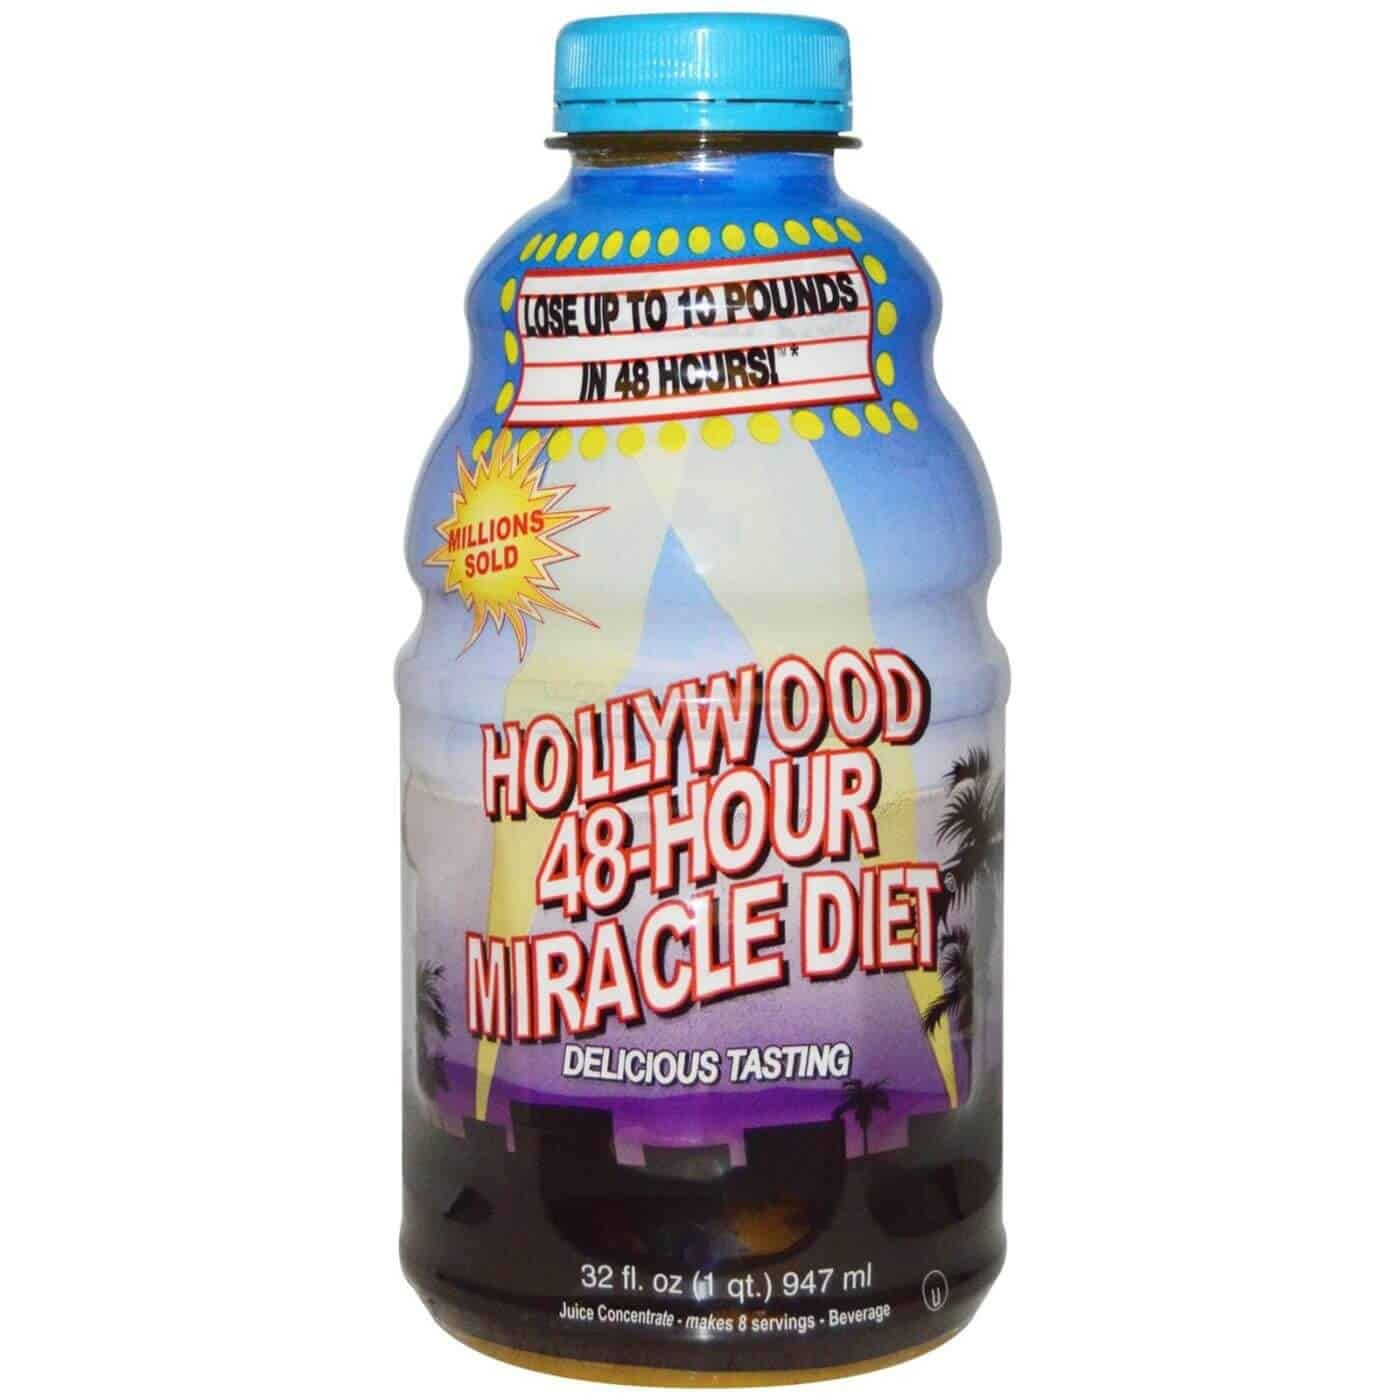 Hollywood 48 Hour Diet Review - Miracle Diet?